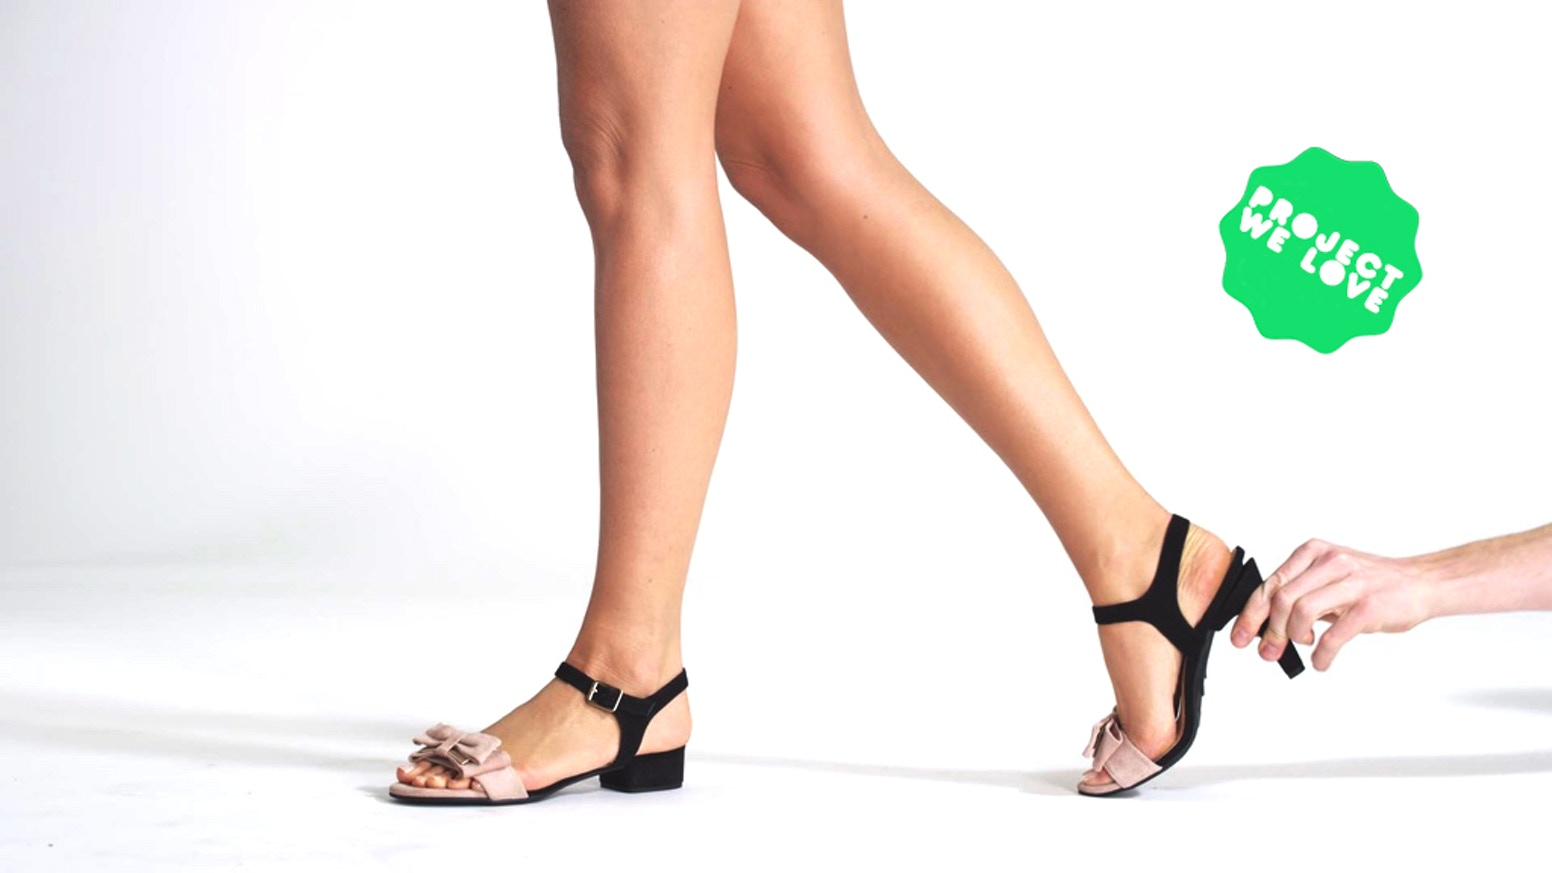 48a15cccb4c Shoes transform from flats to high heels in seconds by Mime et moi ...